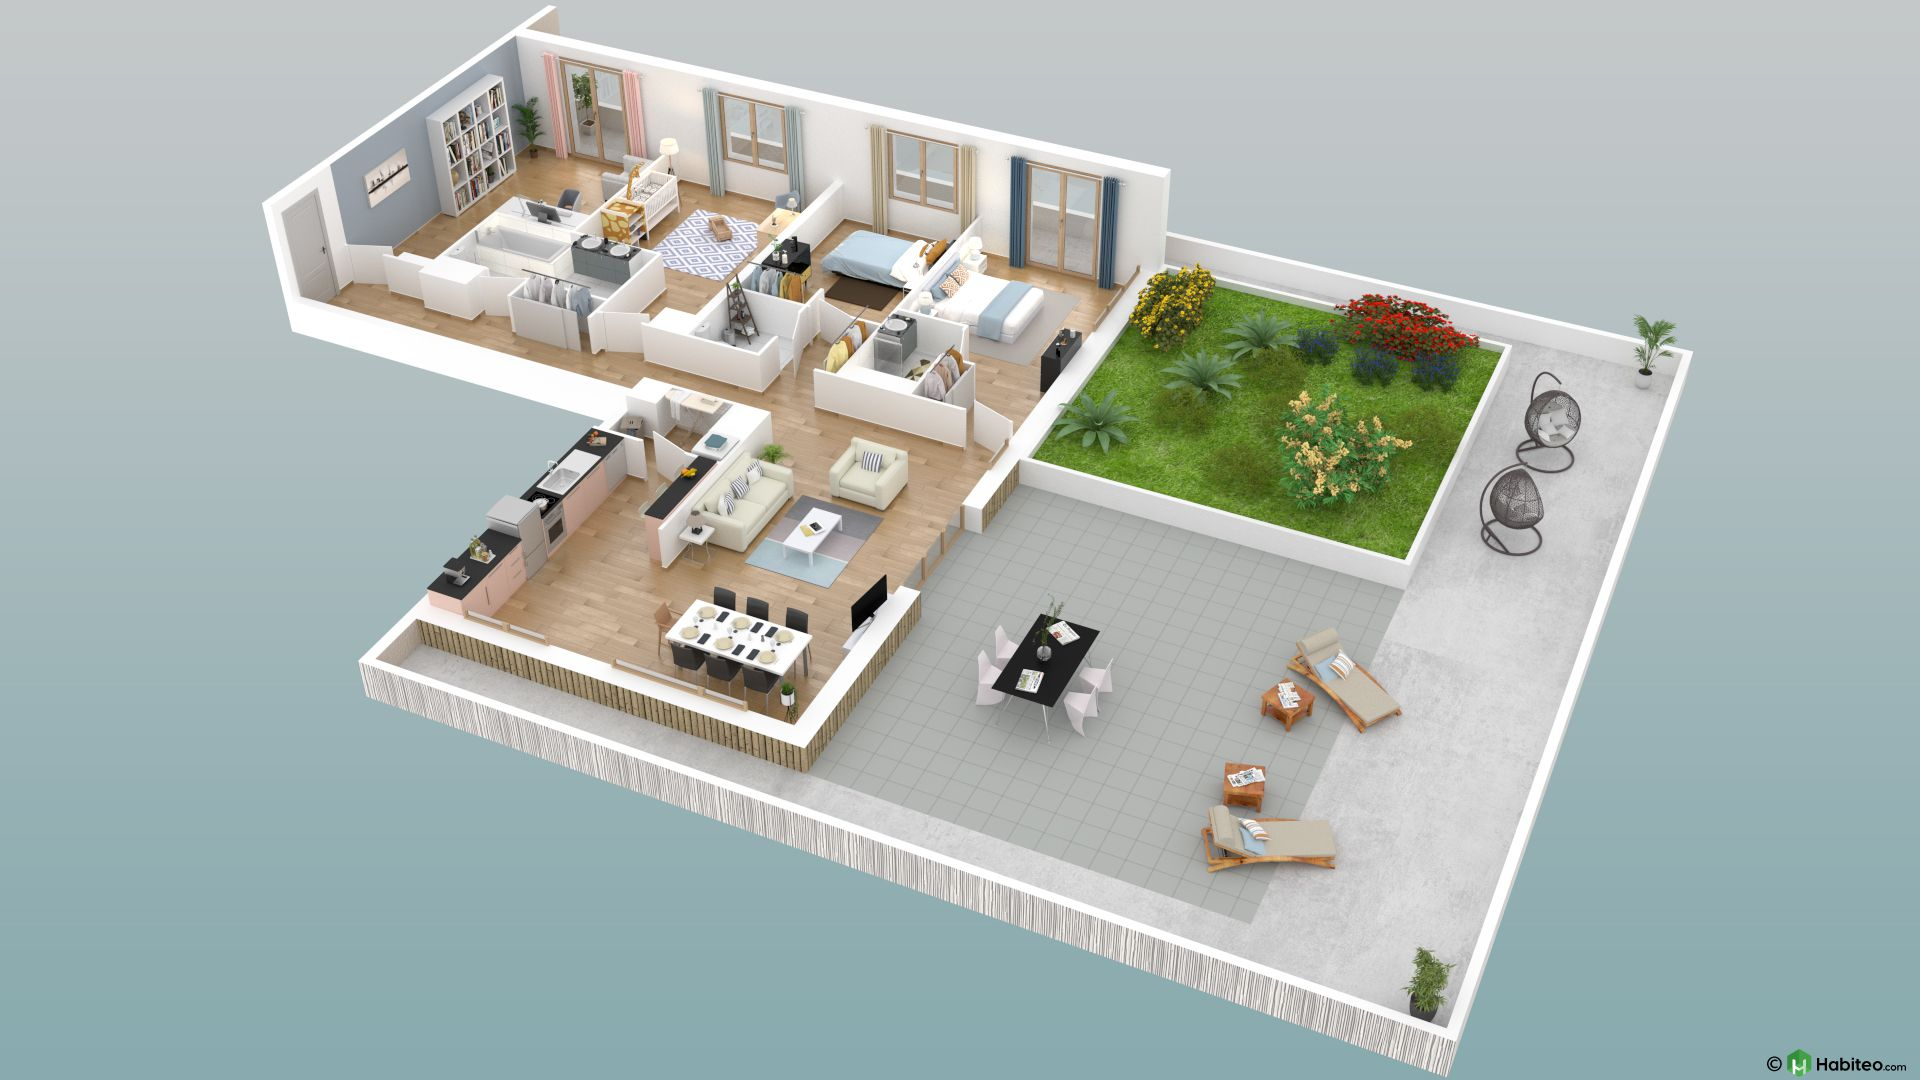 La Canopee Programme Immobilier Neuf A Amiens